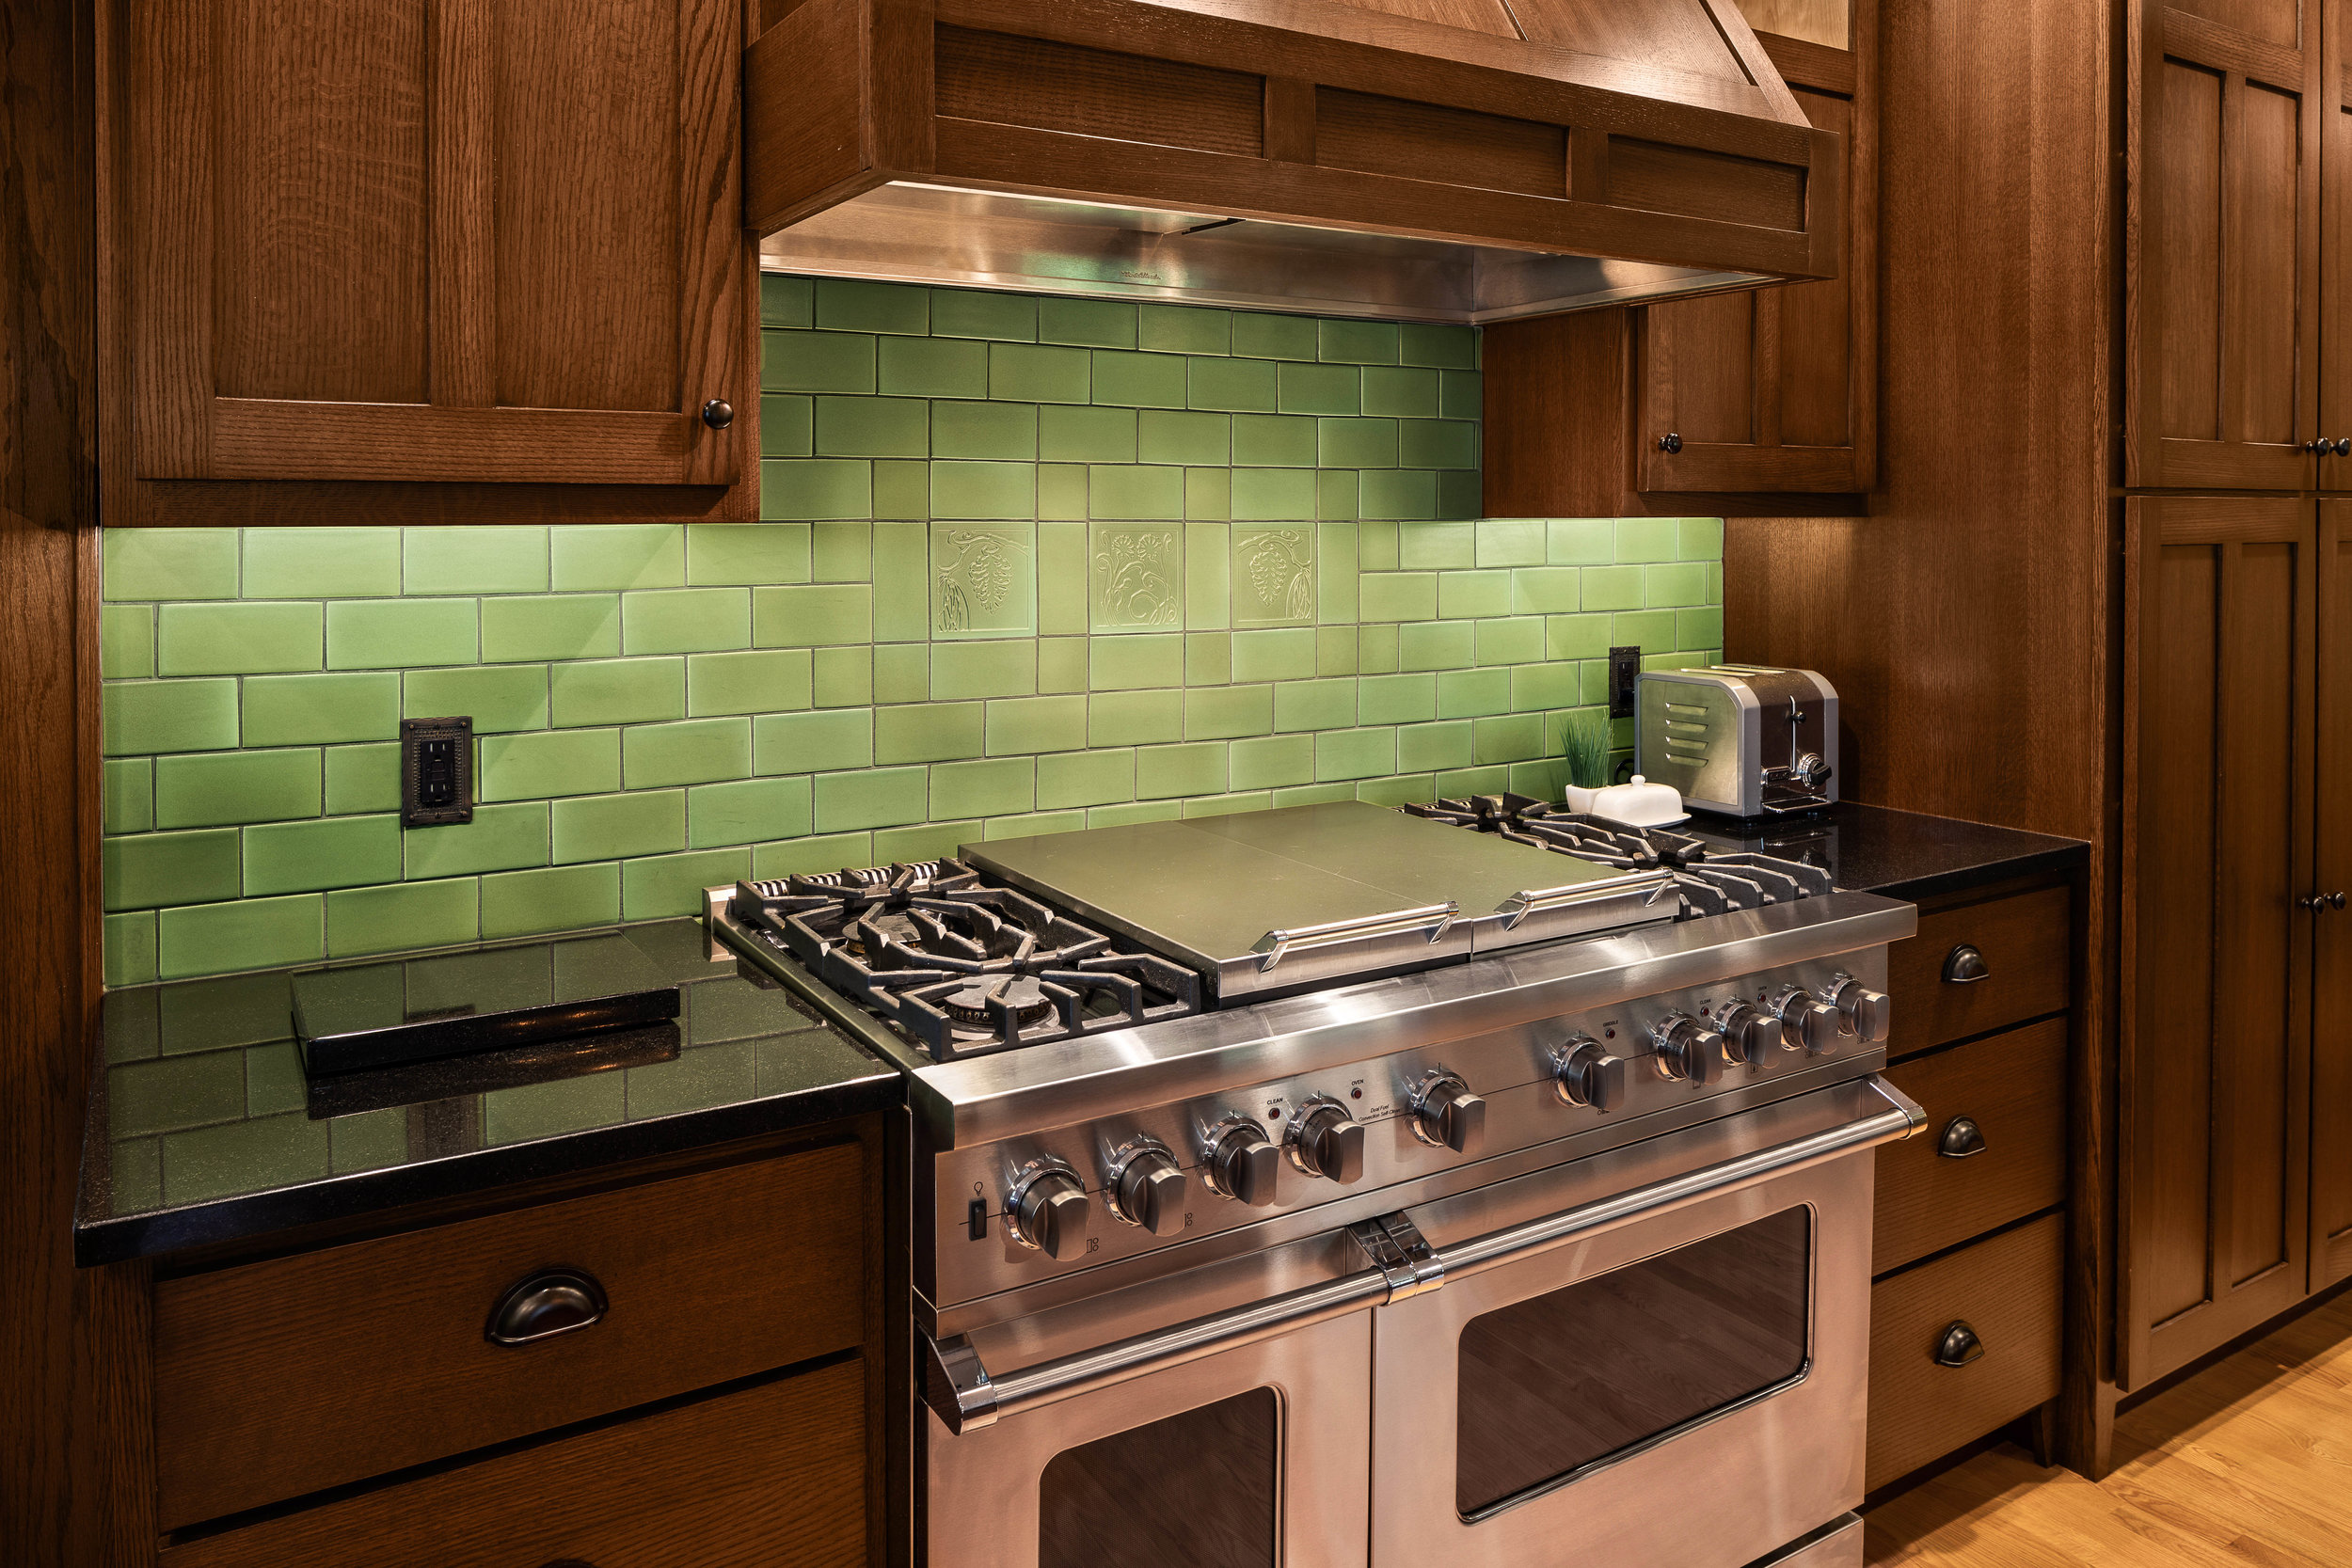 kitchen backsplash5web.jpg